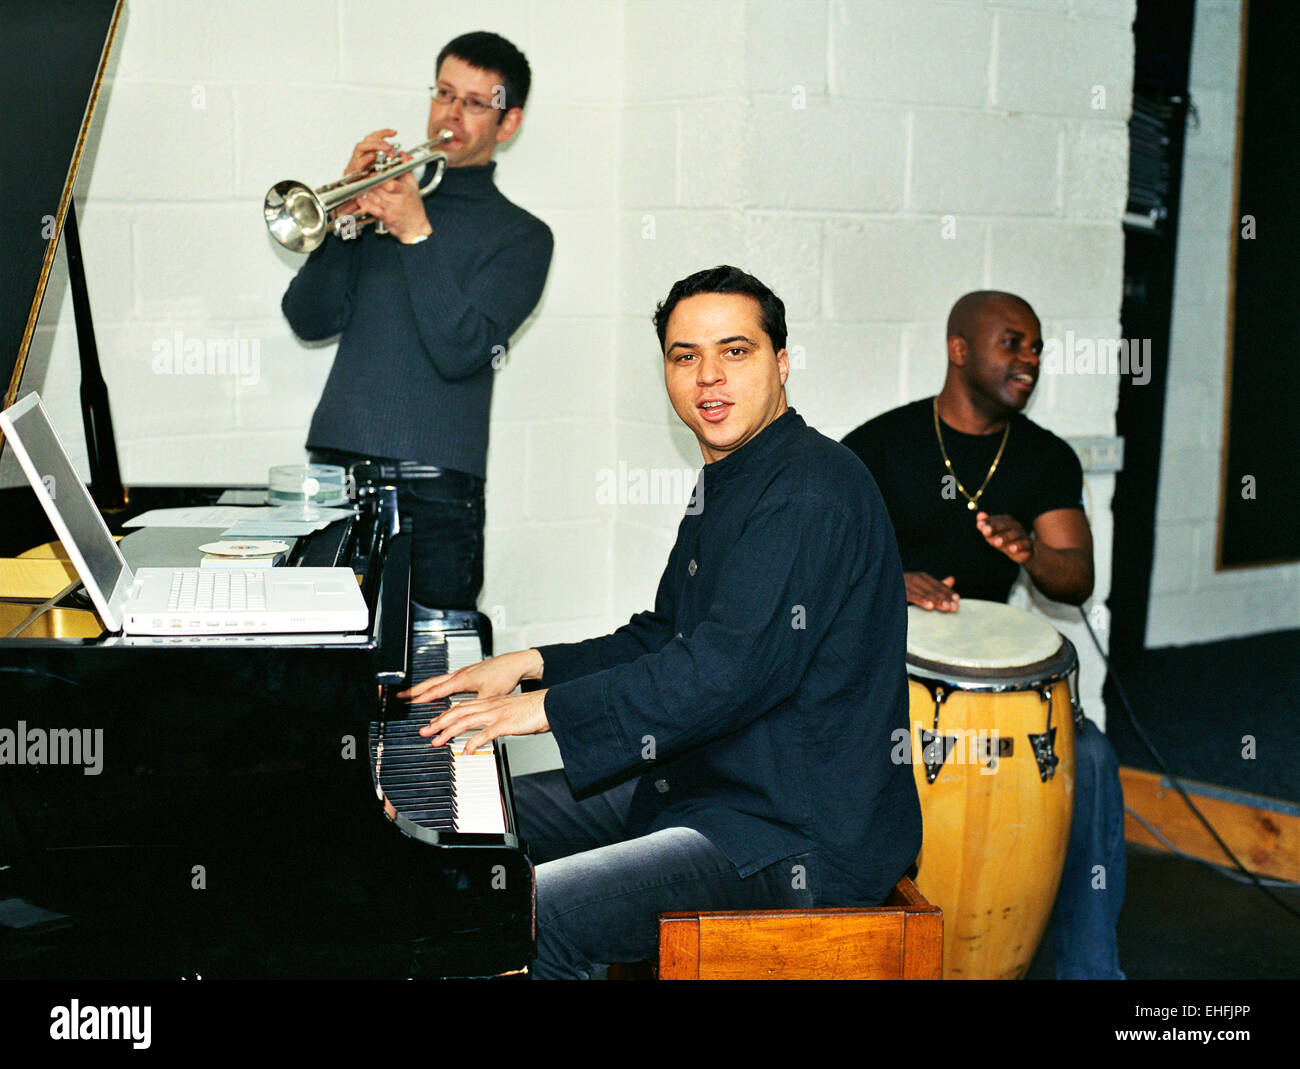 Alex Wilson on piano with Emeris Solis on congos and Paul Jayasinha on trumpet. - Stock Image